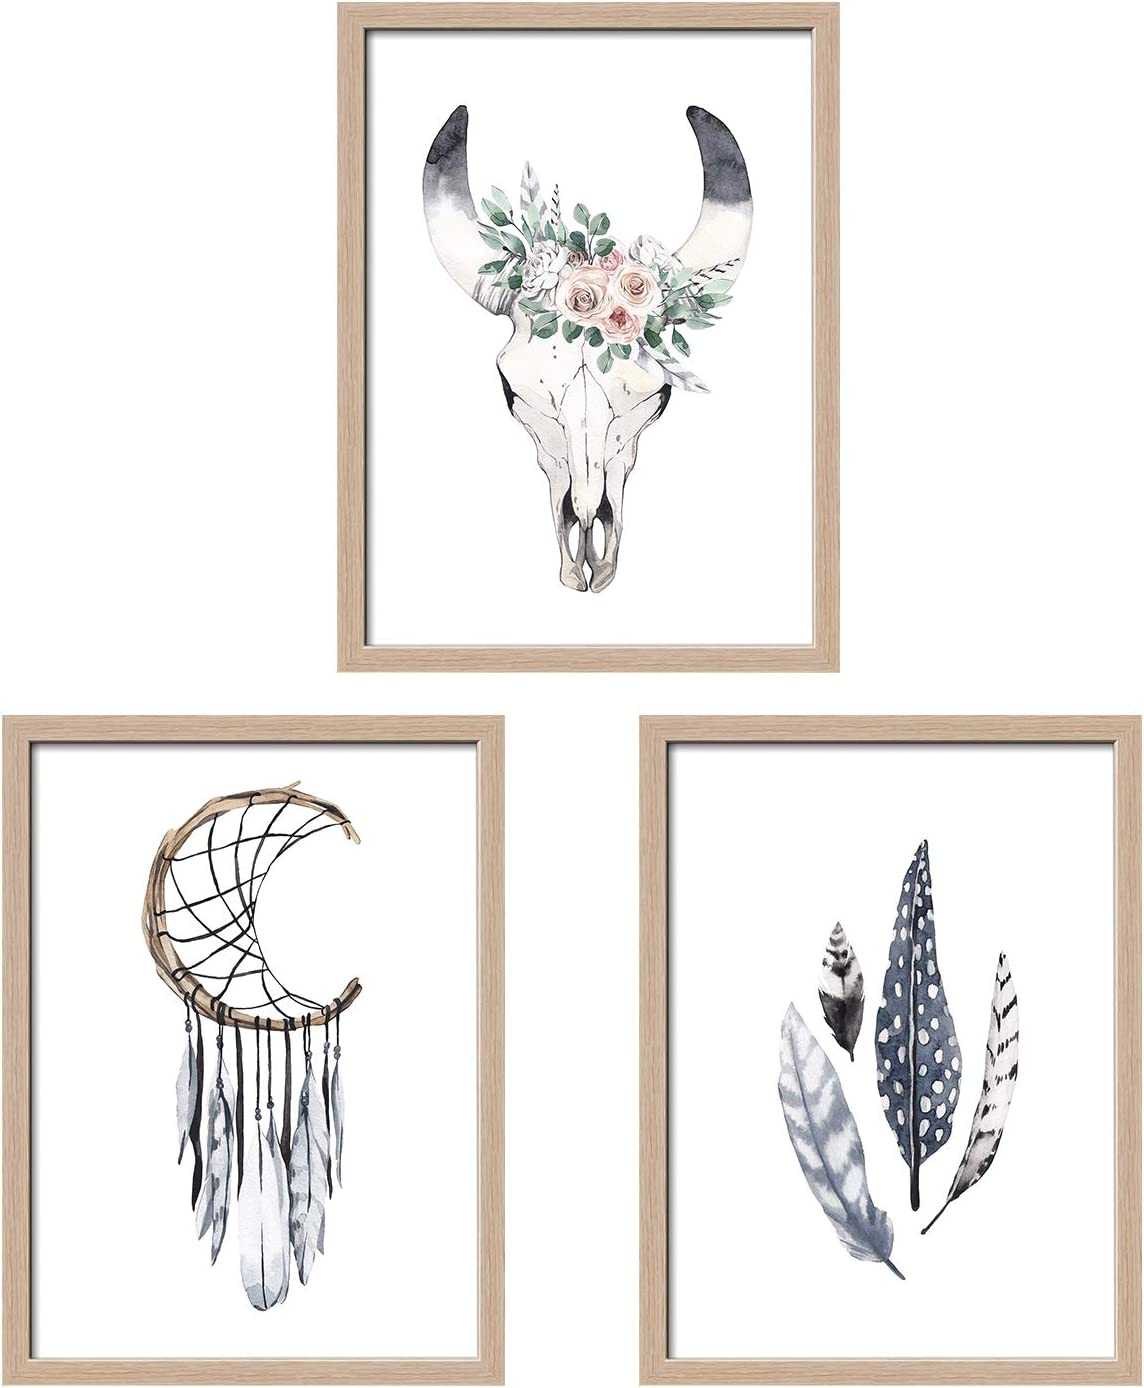 ArtbyHannah 3 Pack 12 x 16Inch Boho Framed Wall Art Decor with Bohemian Dreamcatcher Picture Frame Artwork Prints for Bedroom or Livingroom Decoration